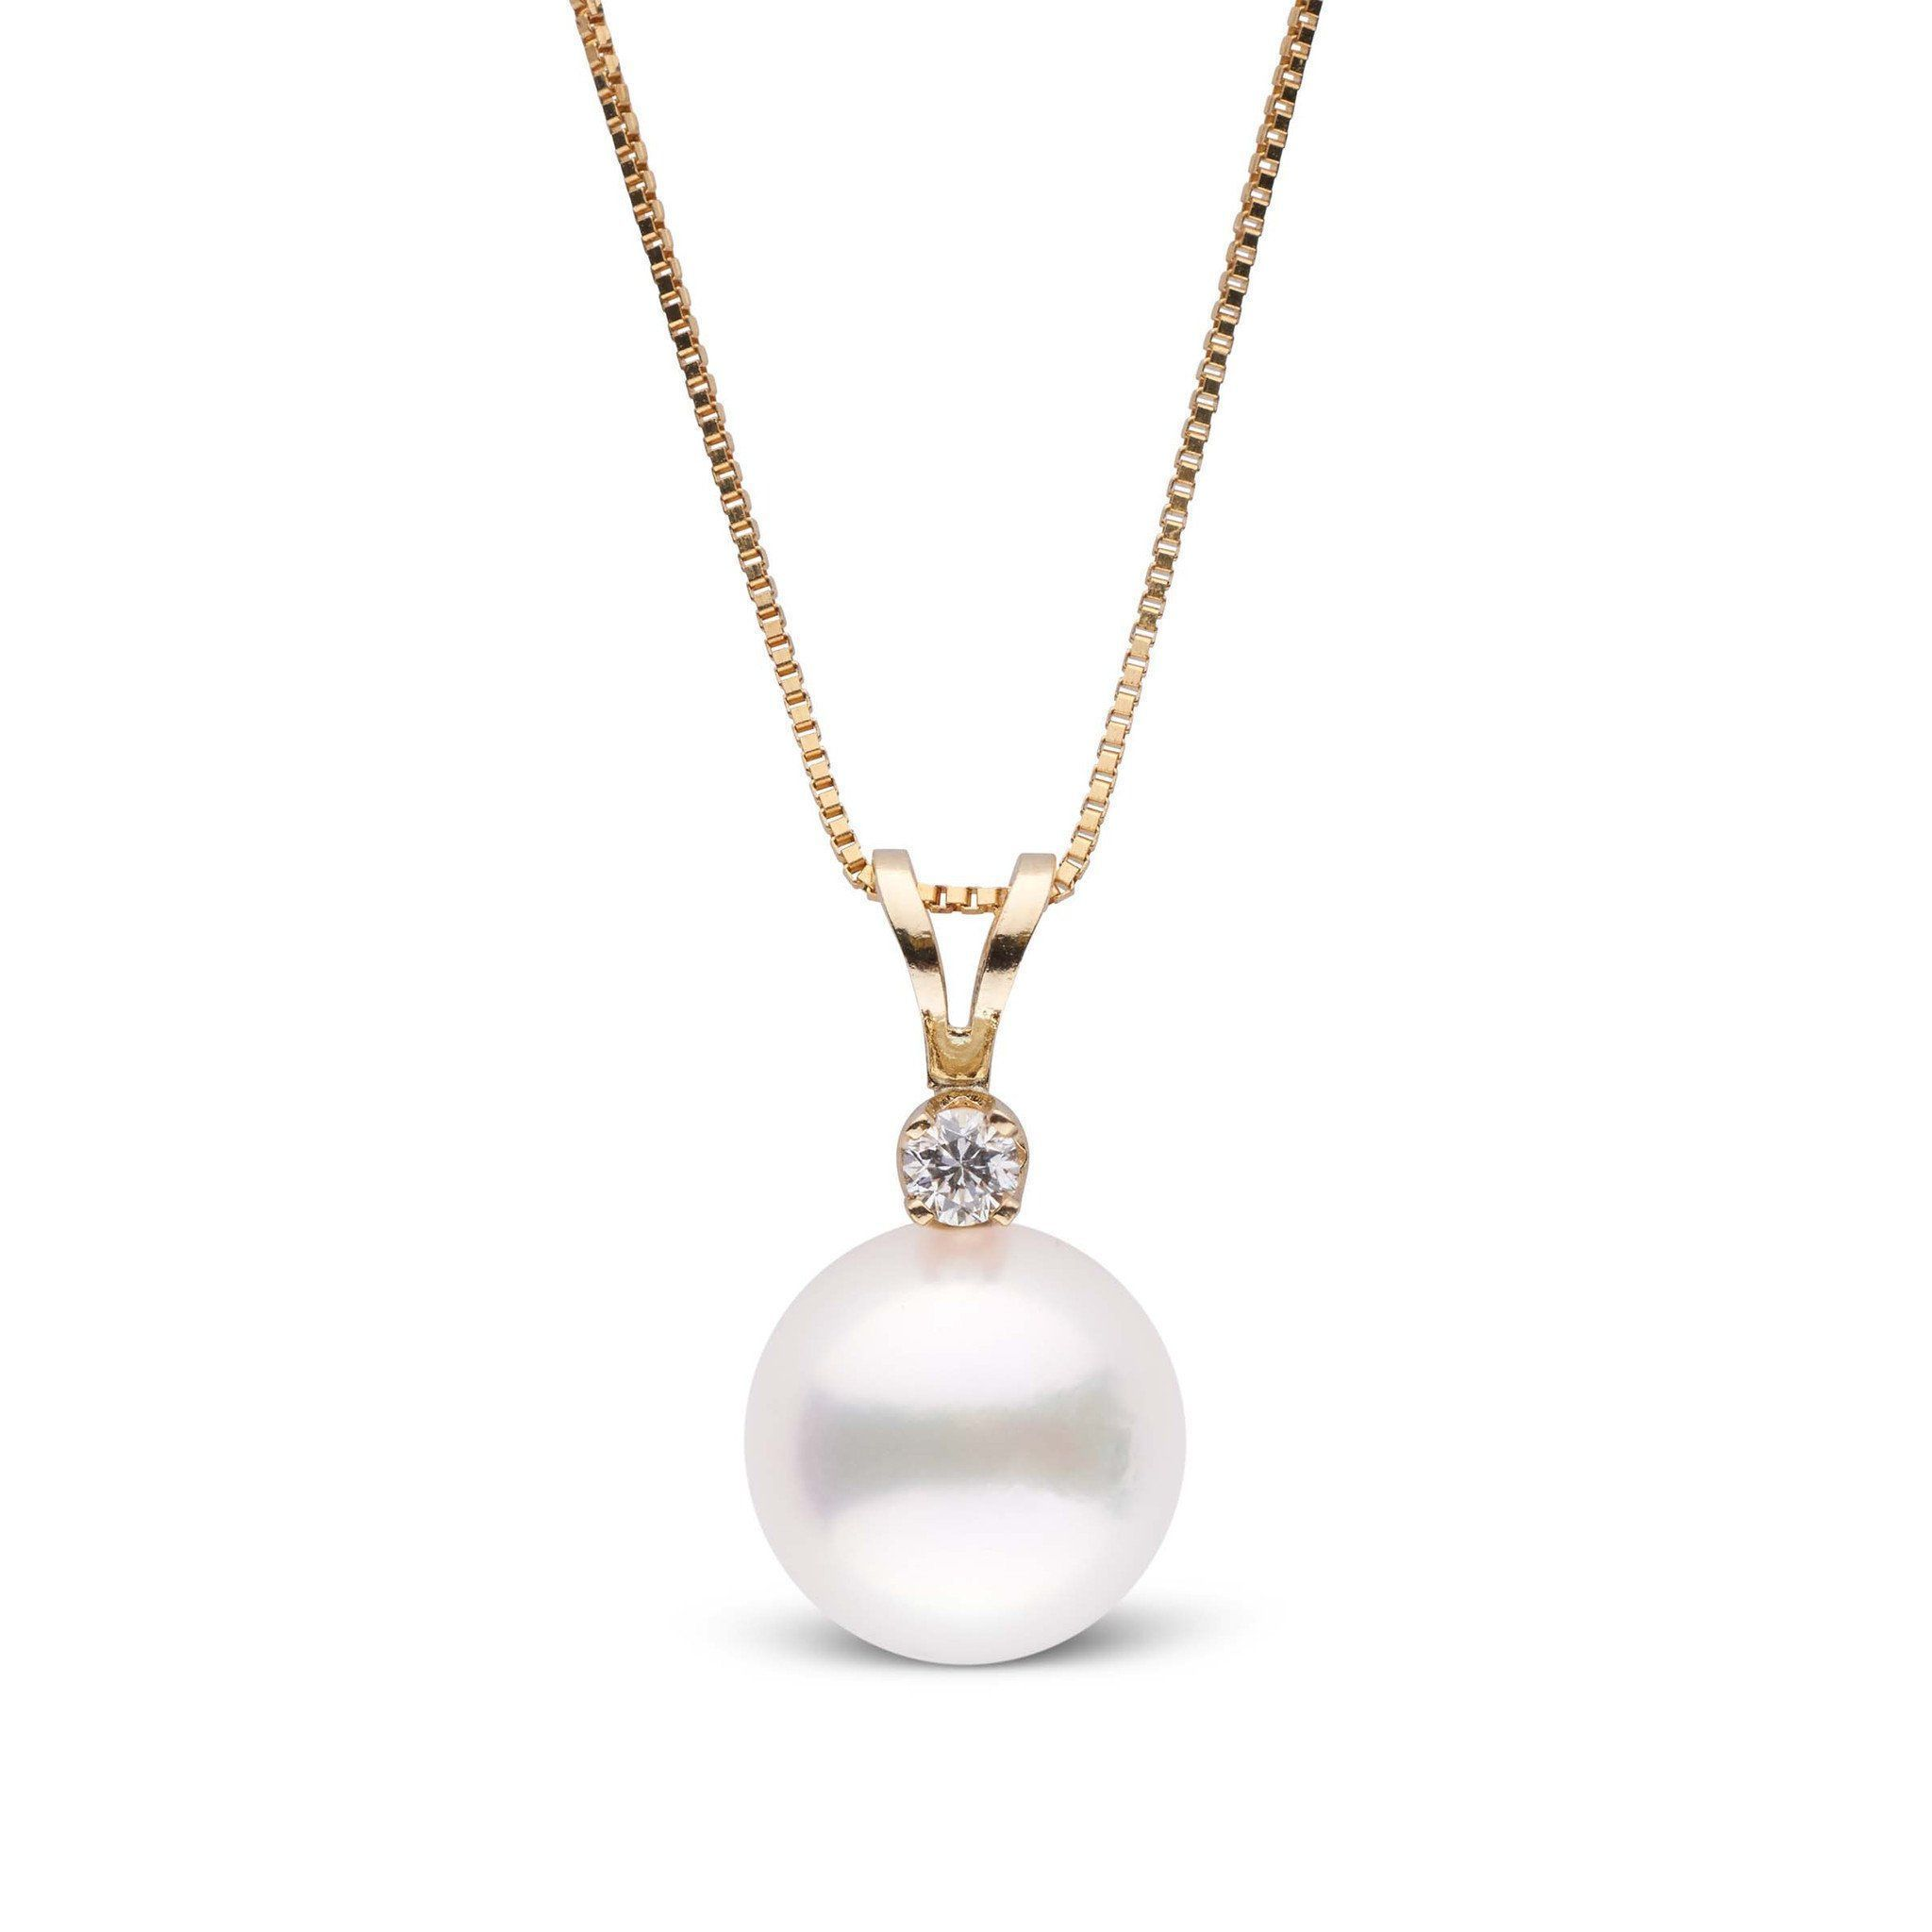 Harmony Collection 8.5-9.0 mm AAA Akoya Pearl Pendant